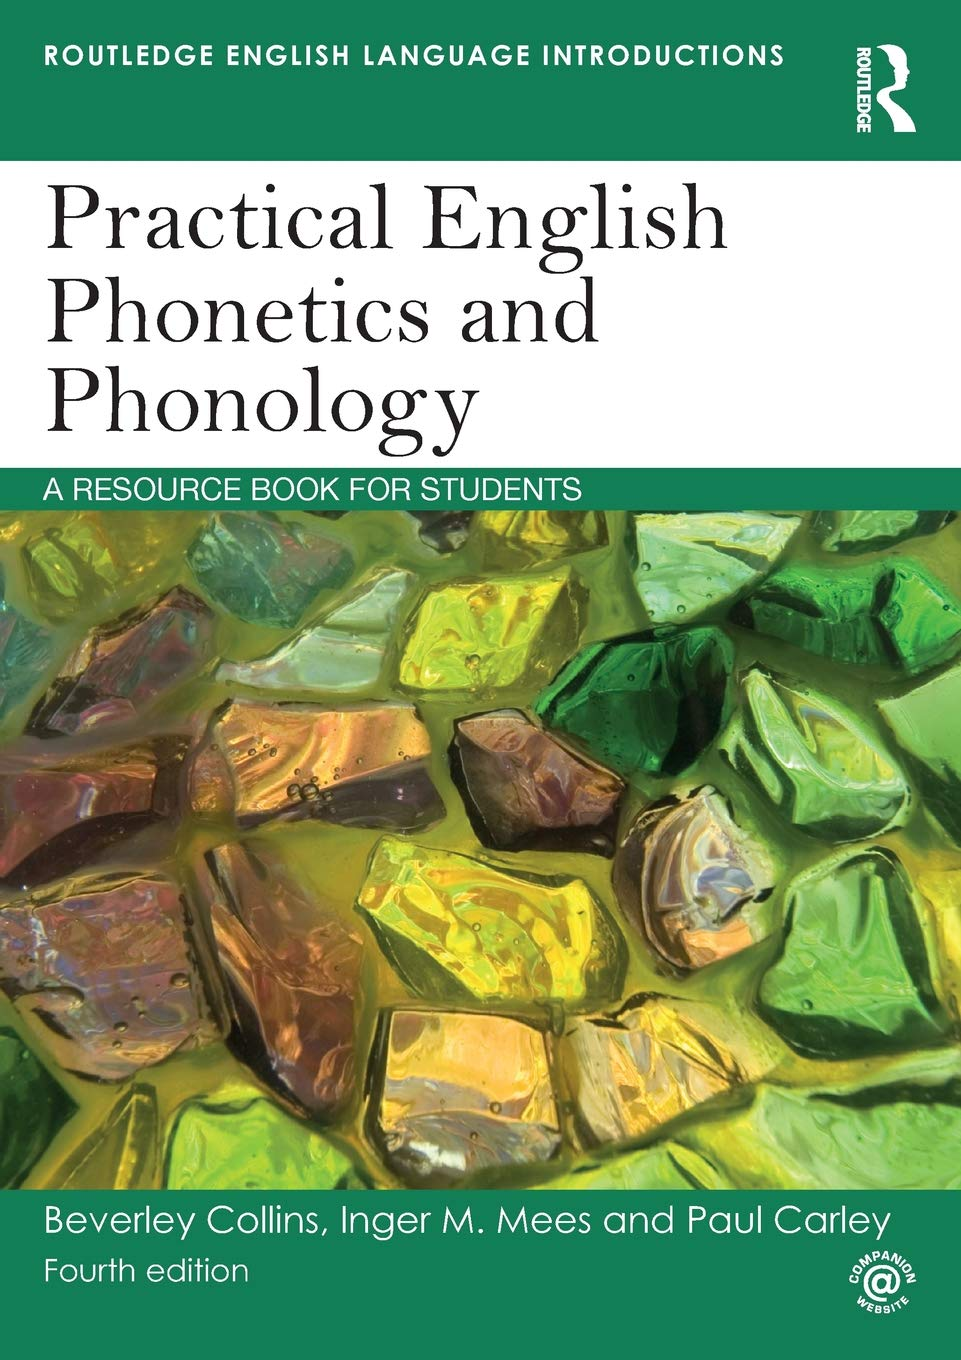 Practical English Phonetics And Phonology  Routledge English Language Introductions